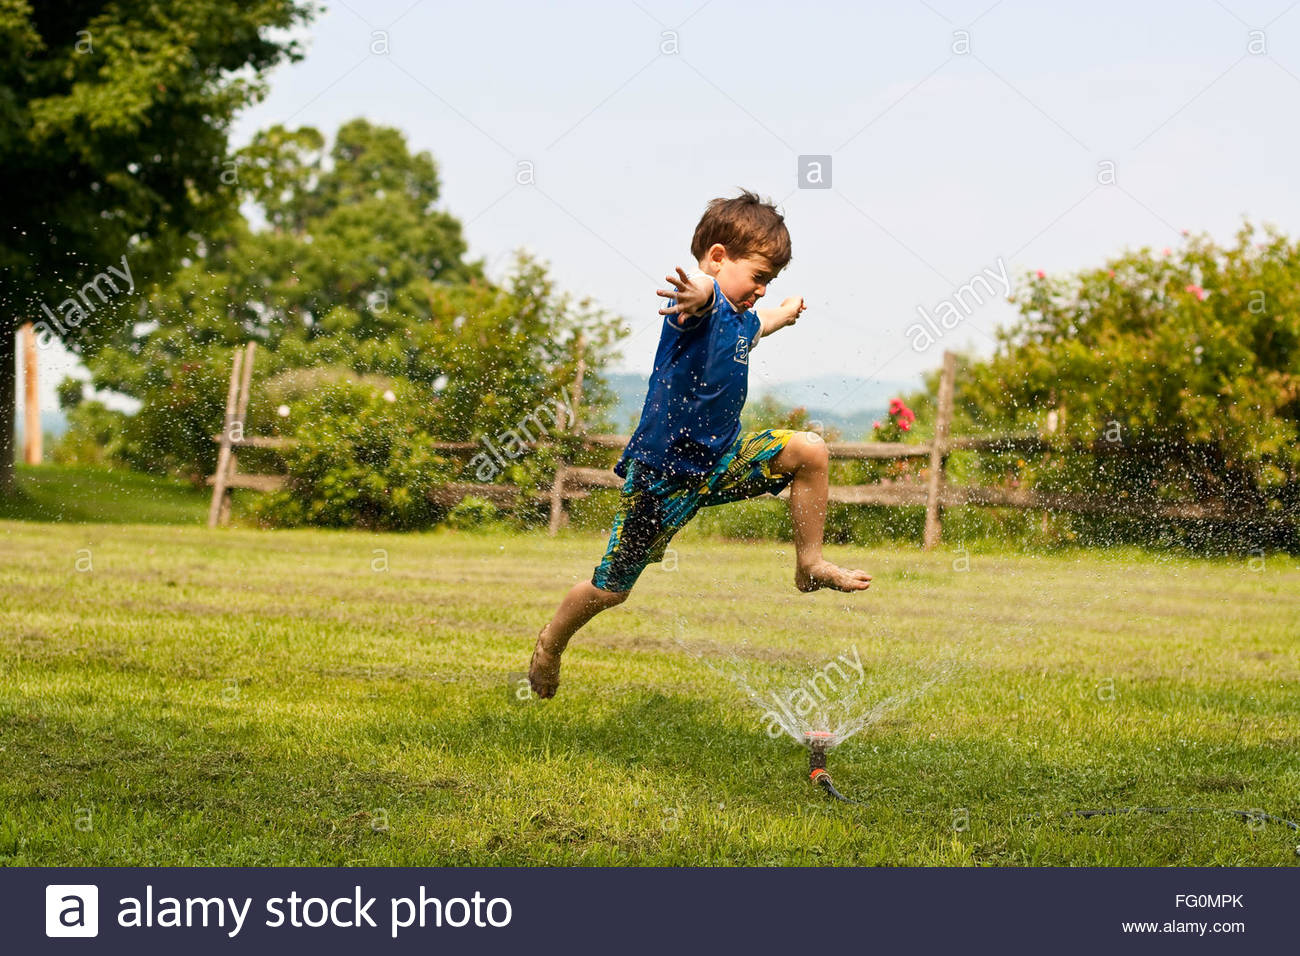 Side View Of Cheerful Boy Jumping Over Sprinkler At Lawn - Stock Image